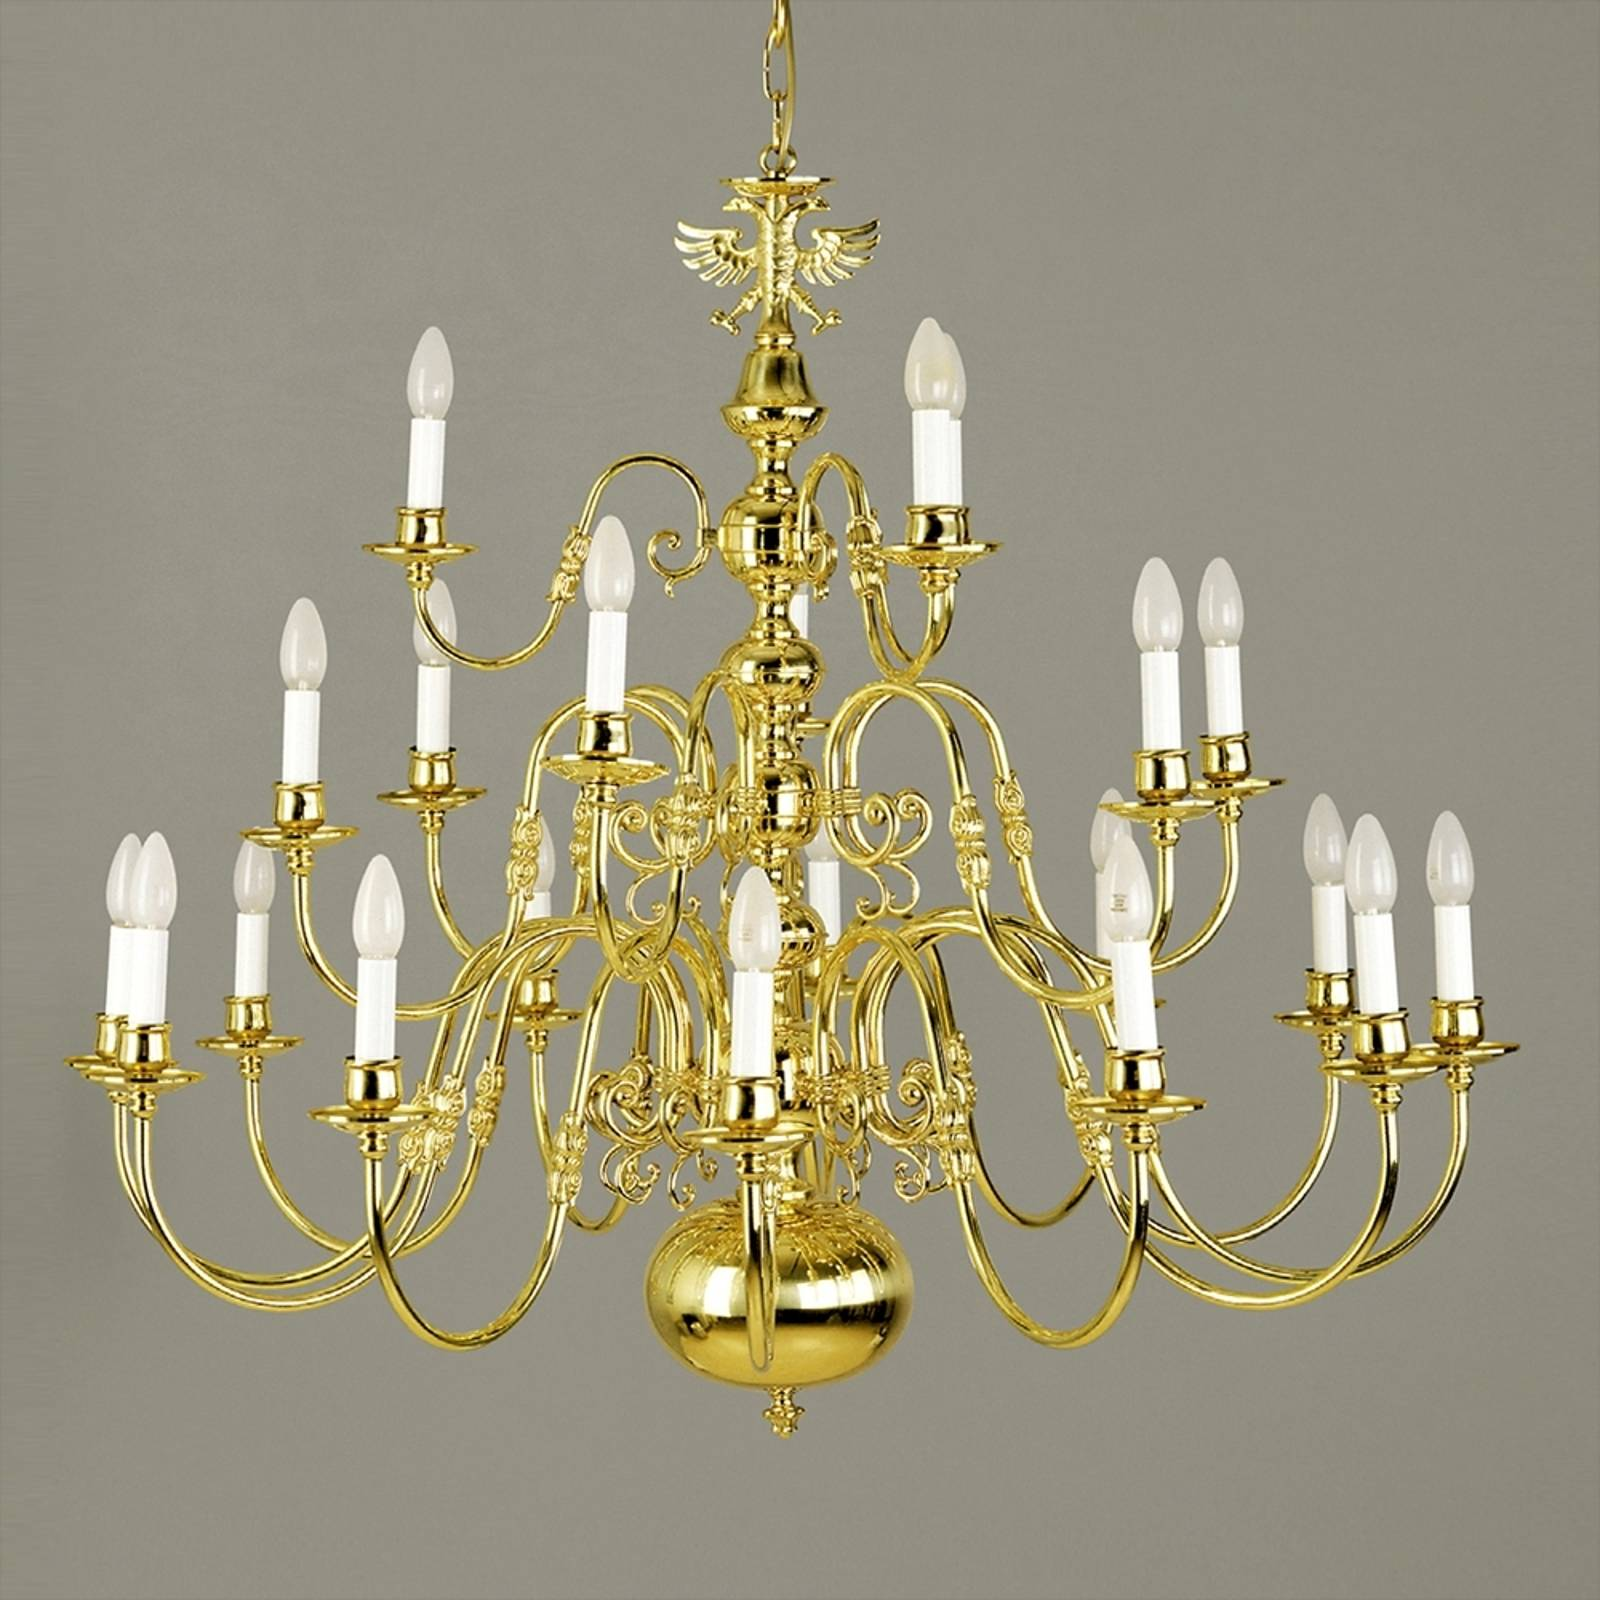 Maximilian Flemish Chandelier 21 Bulbs with Eagle from Orion